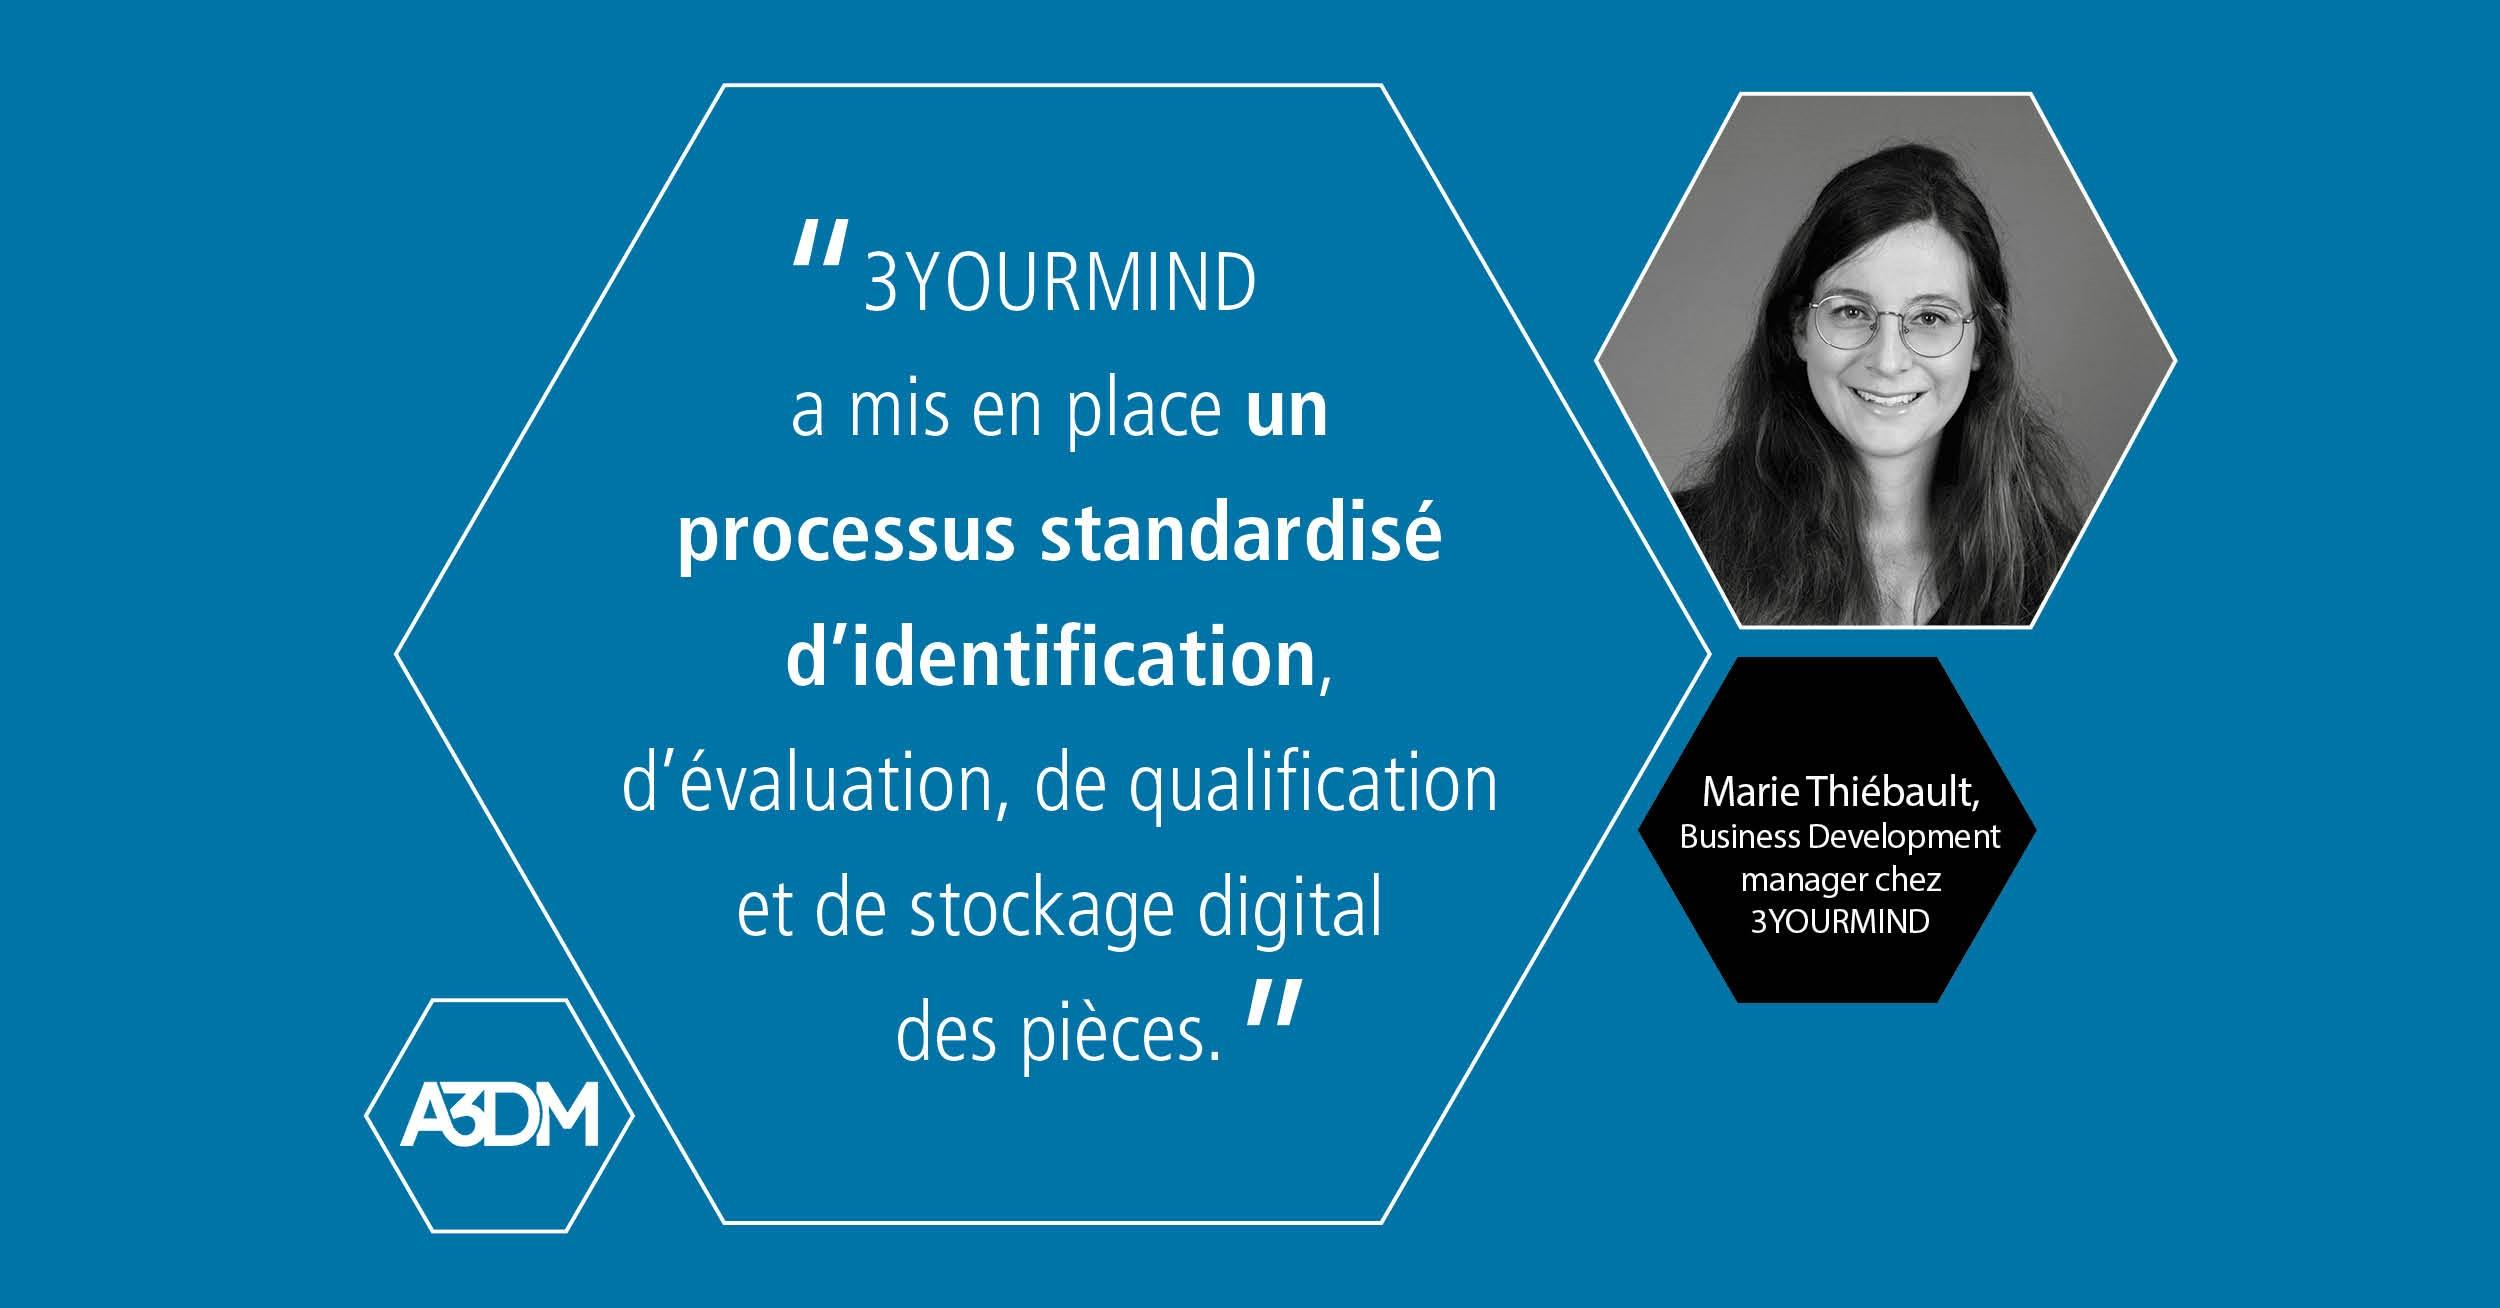 Rencontre avec la start-up 3YOURMIND